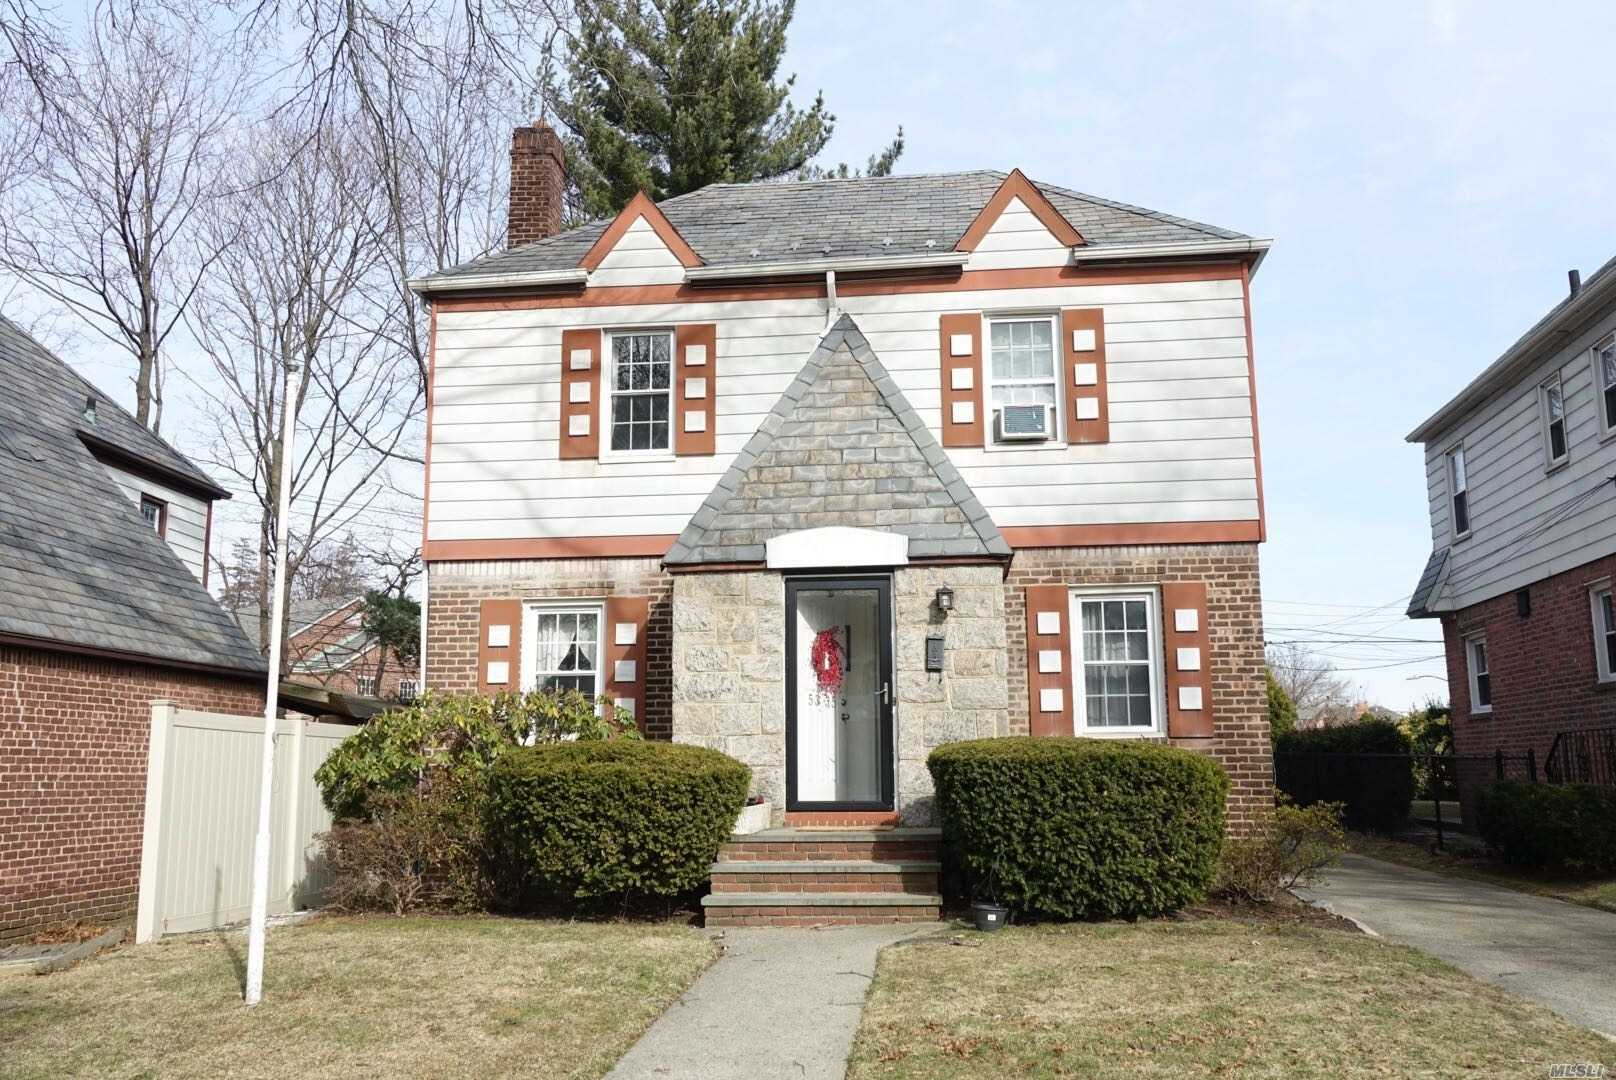 This Beautiful Colonial In Bayside Hills Features 3 Lovely Bedrooms, 1.5 Full Baths And A Full Finished Basement.Move In Condition, New Kit And Bath Room, New Wood Floor, 1 Car Garage. Close To Major Highway, Walking Distance To Ps 203 Ms74. And Cardozo Hs. Close To Bus Q27, Q31, Q30 To All.